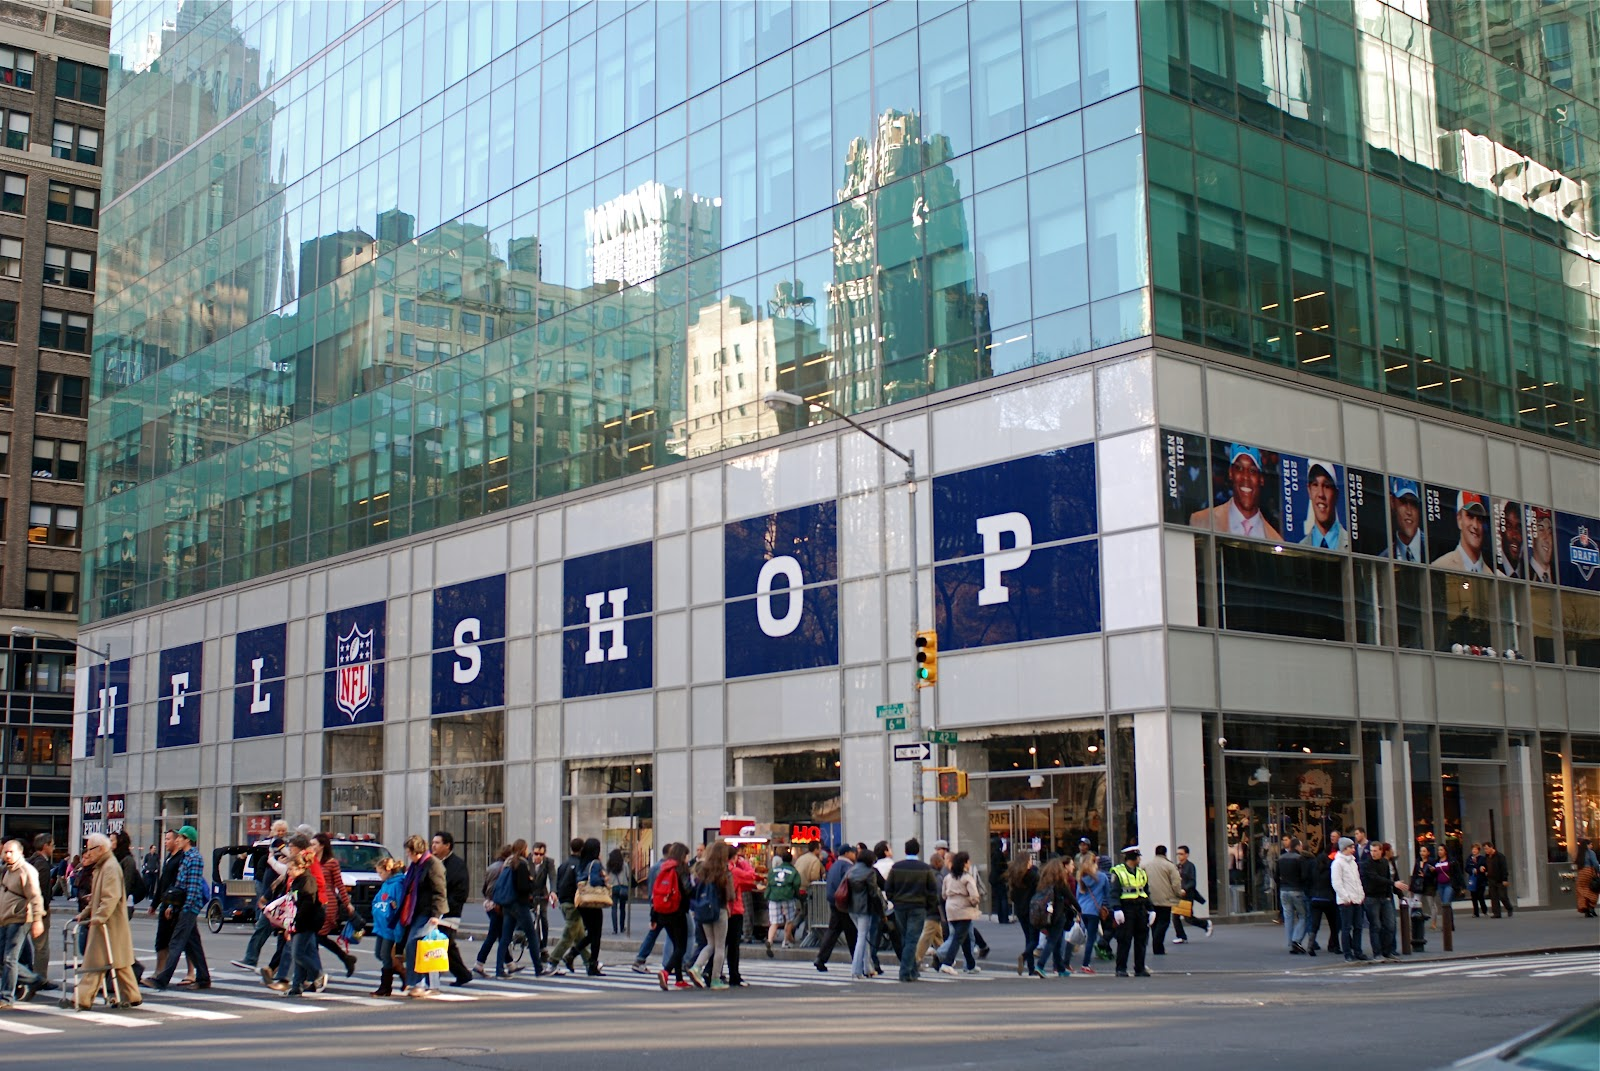 FOX Sports Shop has Pro and College Apparel and Merchandise. MLB Gear, NHL and NBA Apparel, NFL Gear. College Clothing. Hats, Jerseys, Shirts.